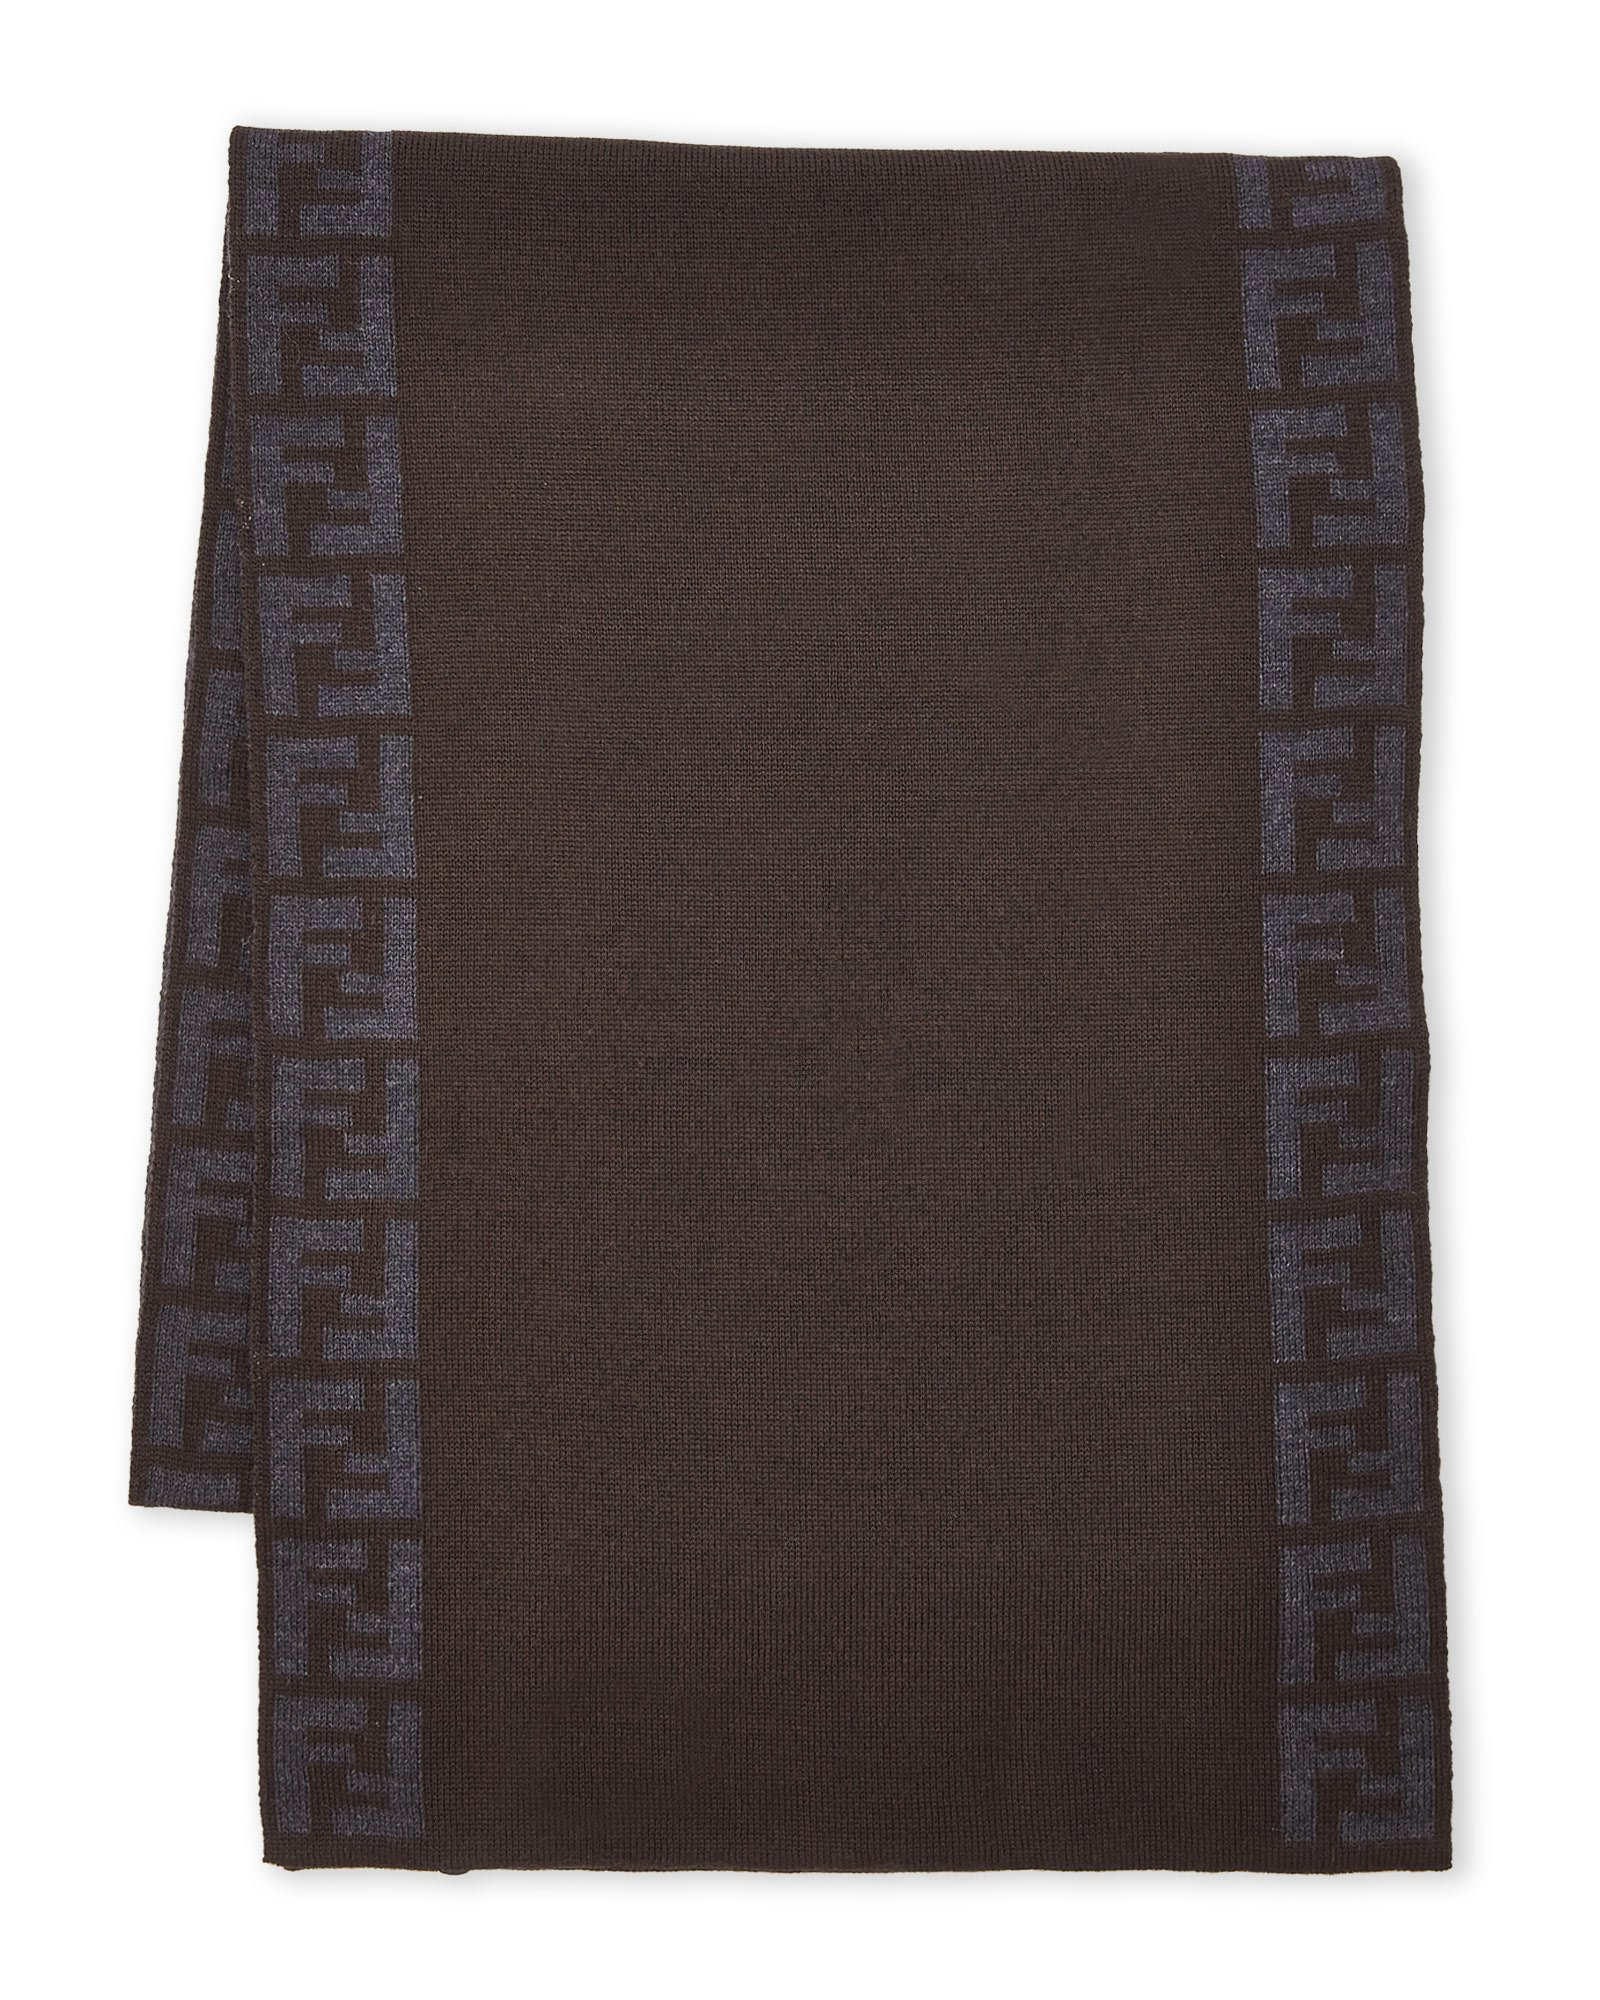 Fendi Knit Monogram Wool Scarf Zucca Stripe, T'Moro Brown